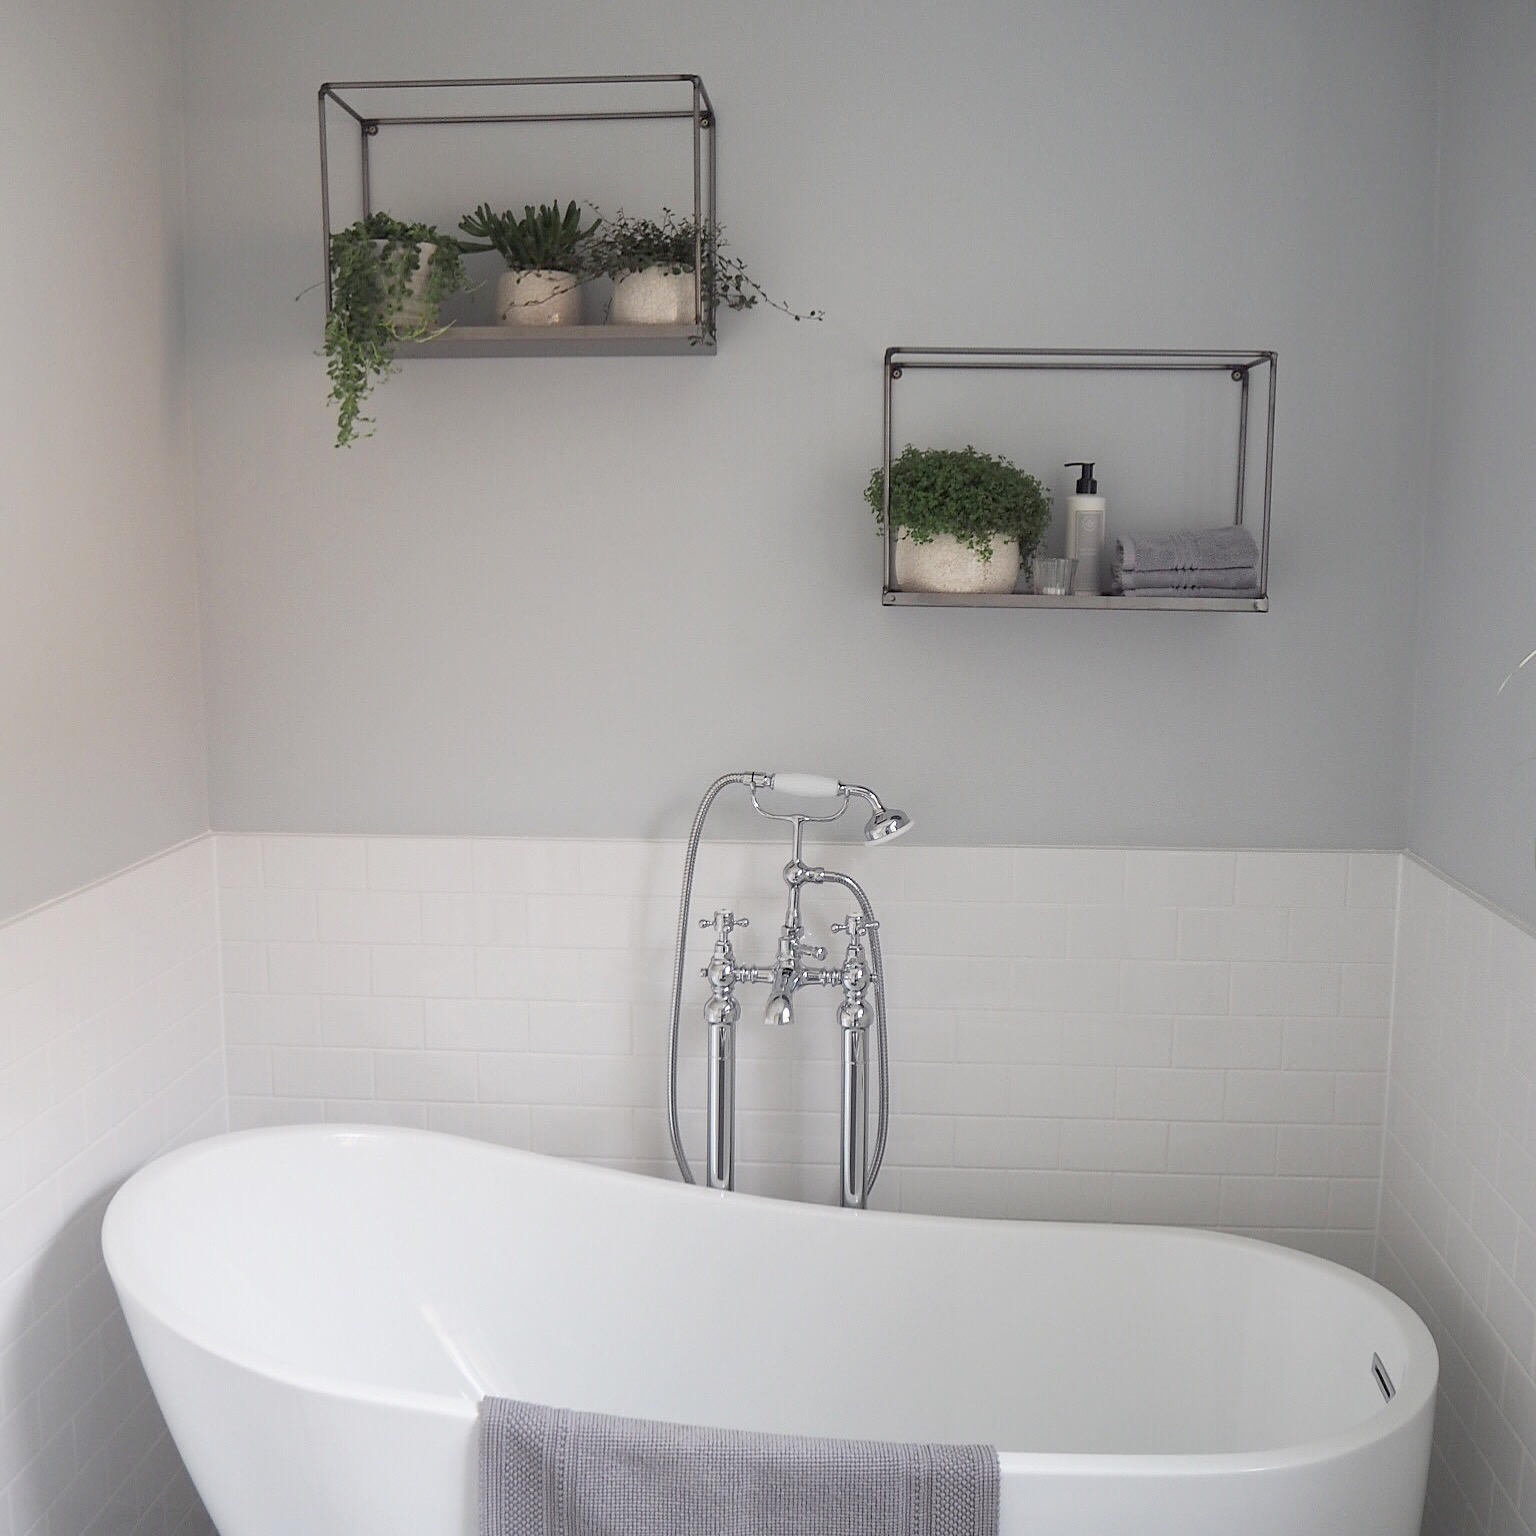 3 Little Ladies And Me Bathroom Styling With Garden Trading